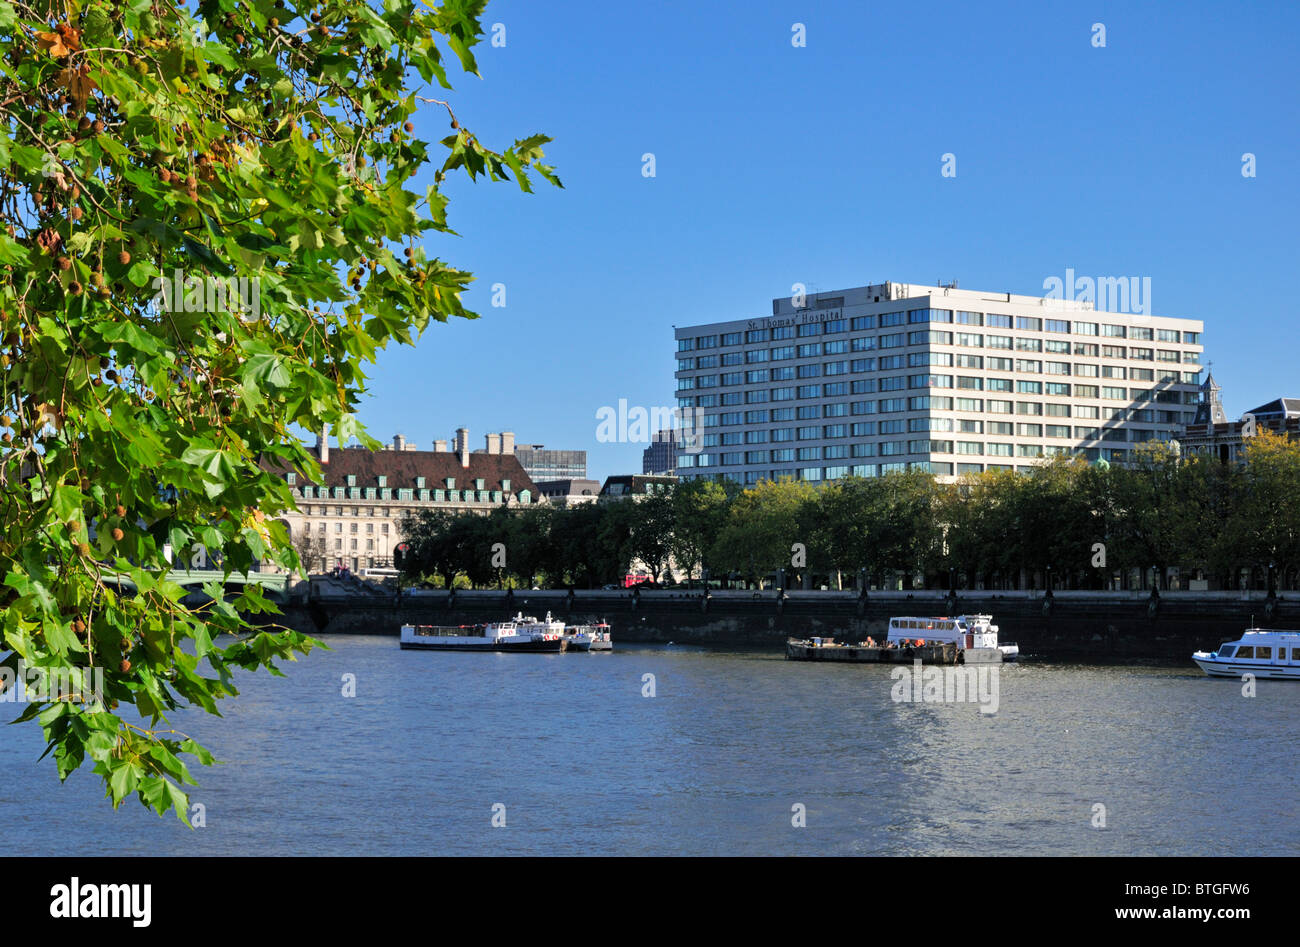 St. Thomas' Hospital, Westminster Bridge Road, London, SE1 7EH, United Kingdom - Stock Image